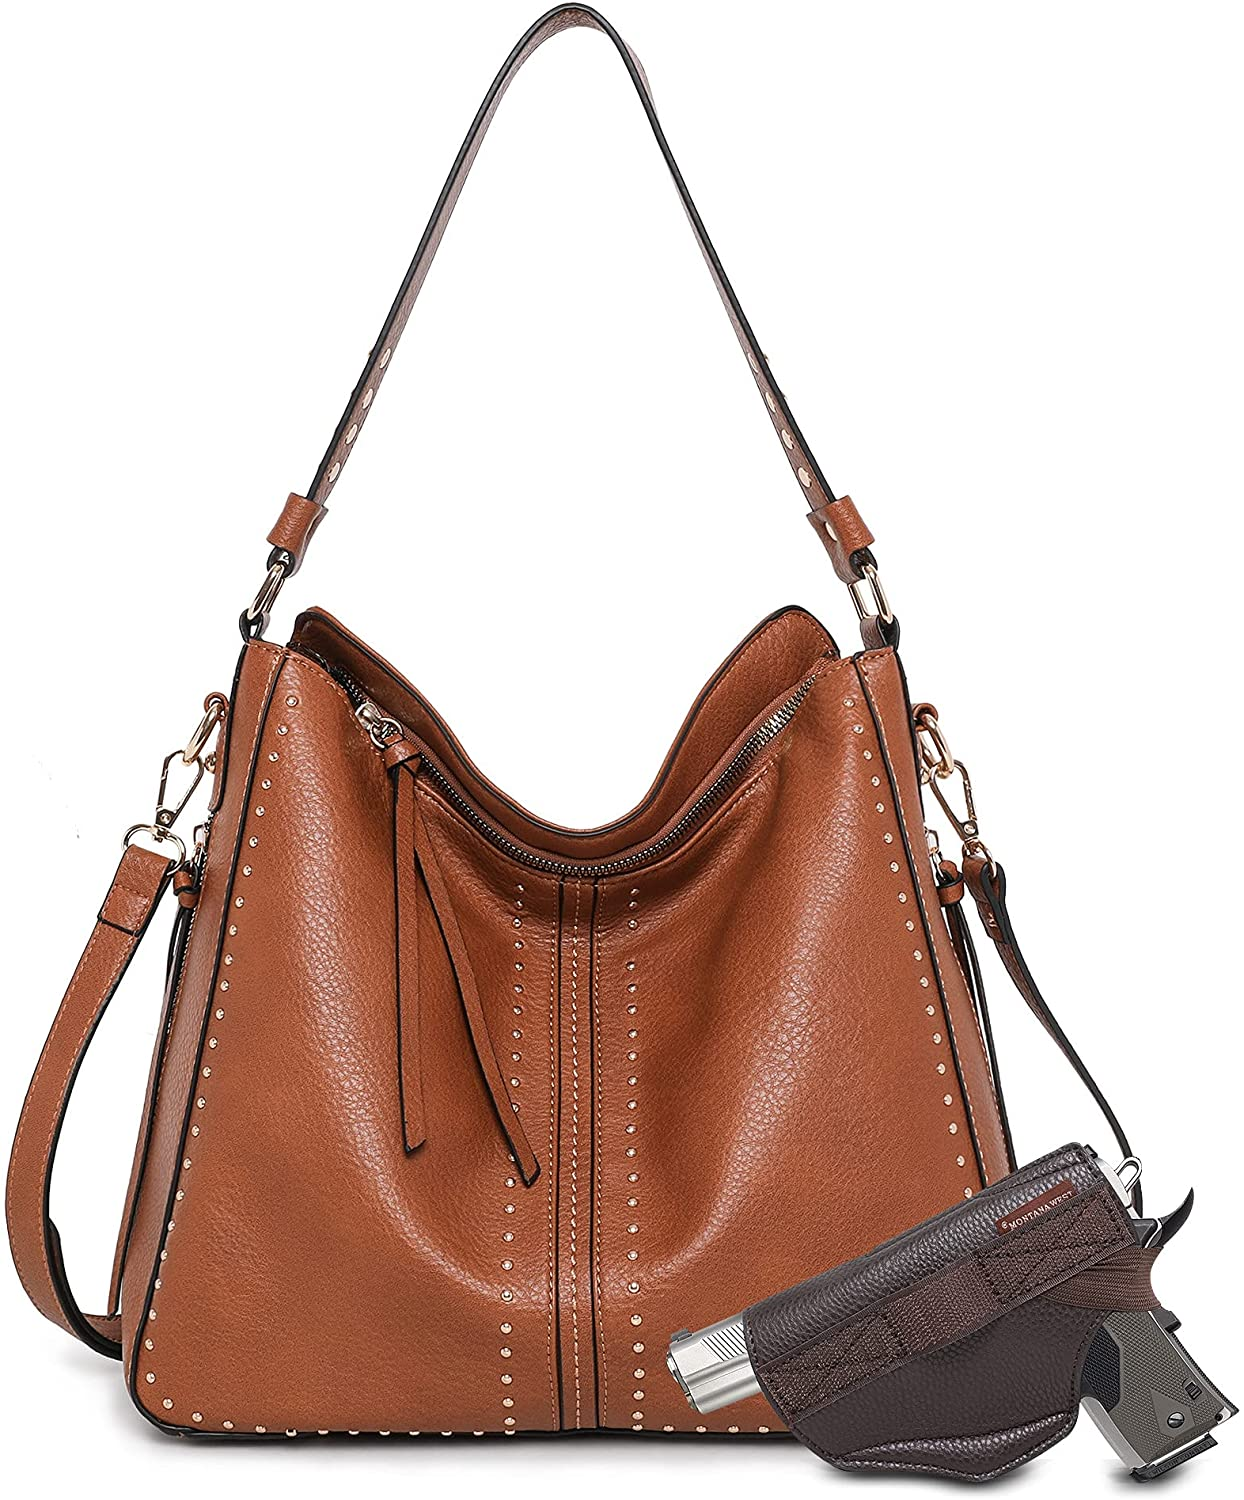 Genuine Tote Max 86% OFF Bag for Women Large Concealed and Carry Handbags Fau Purses